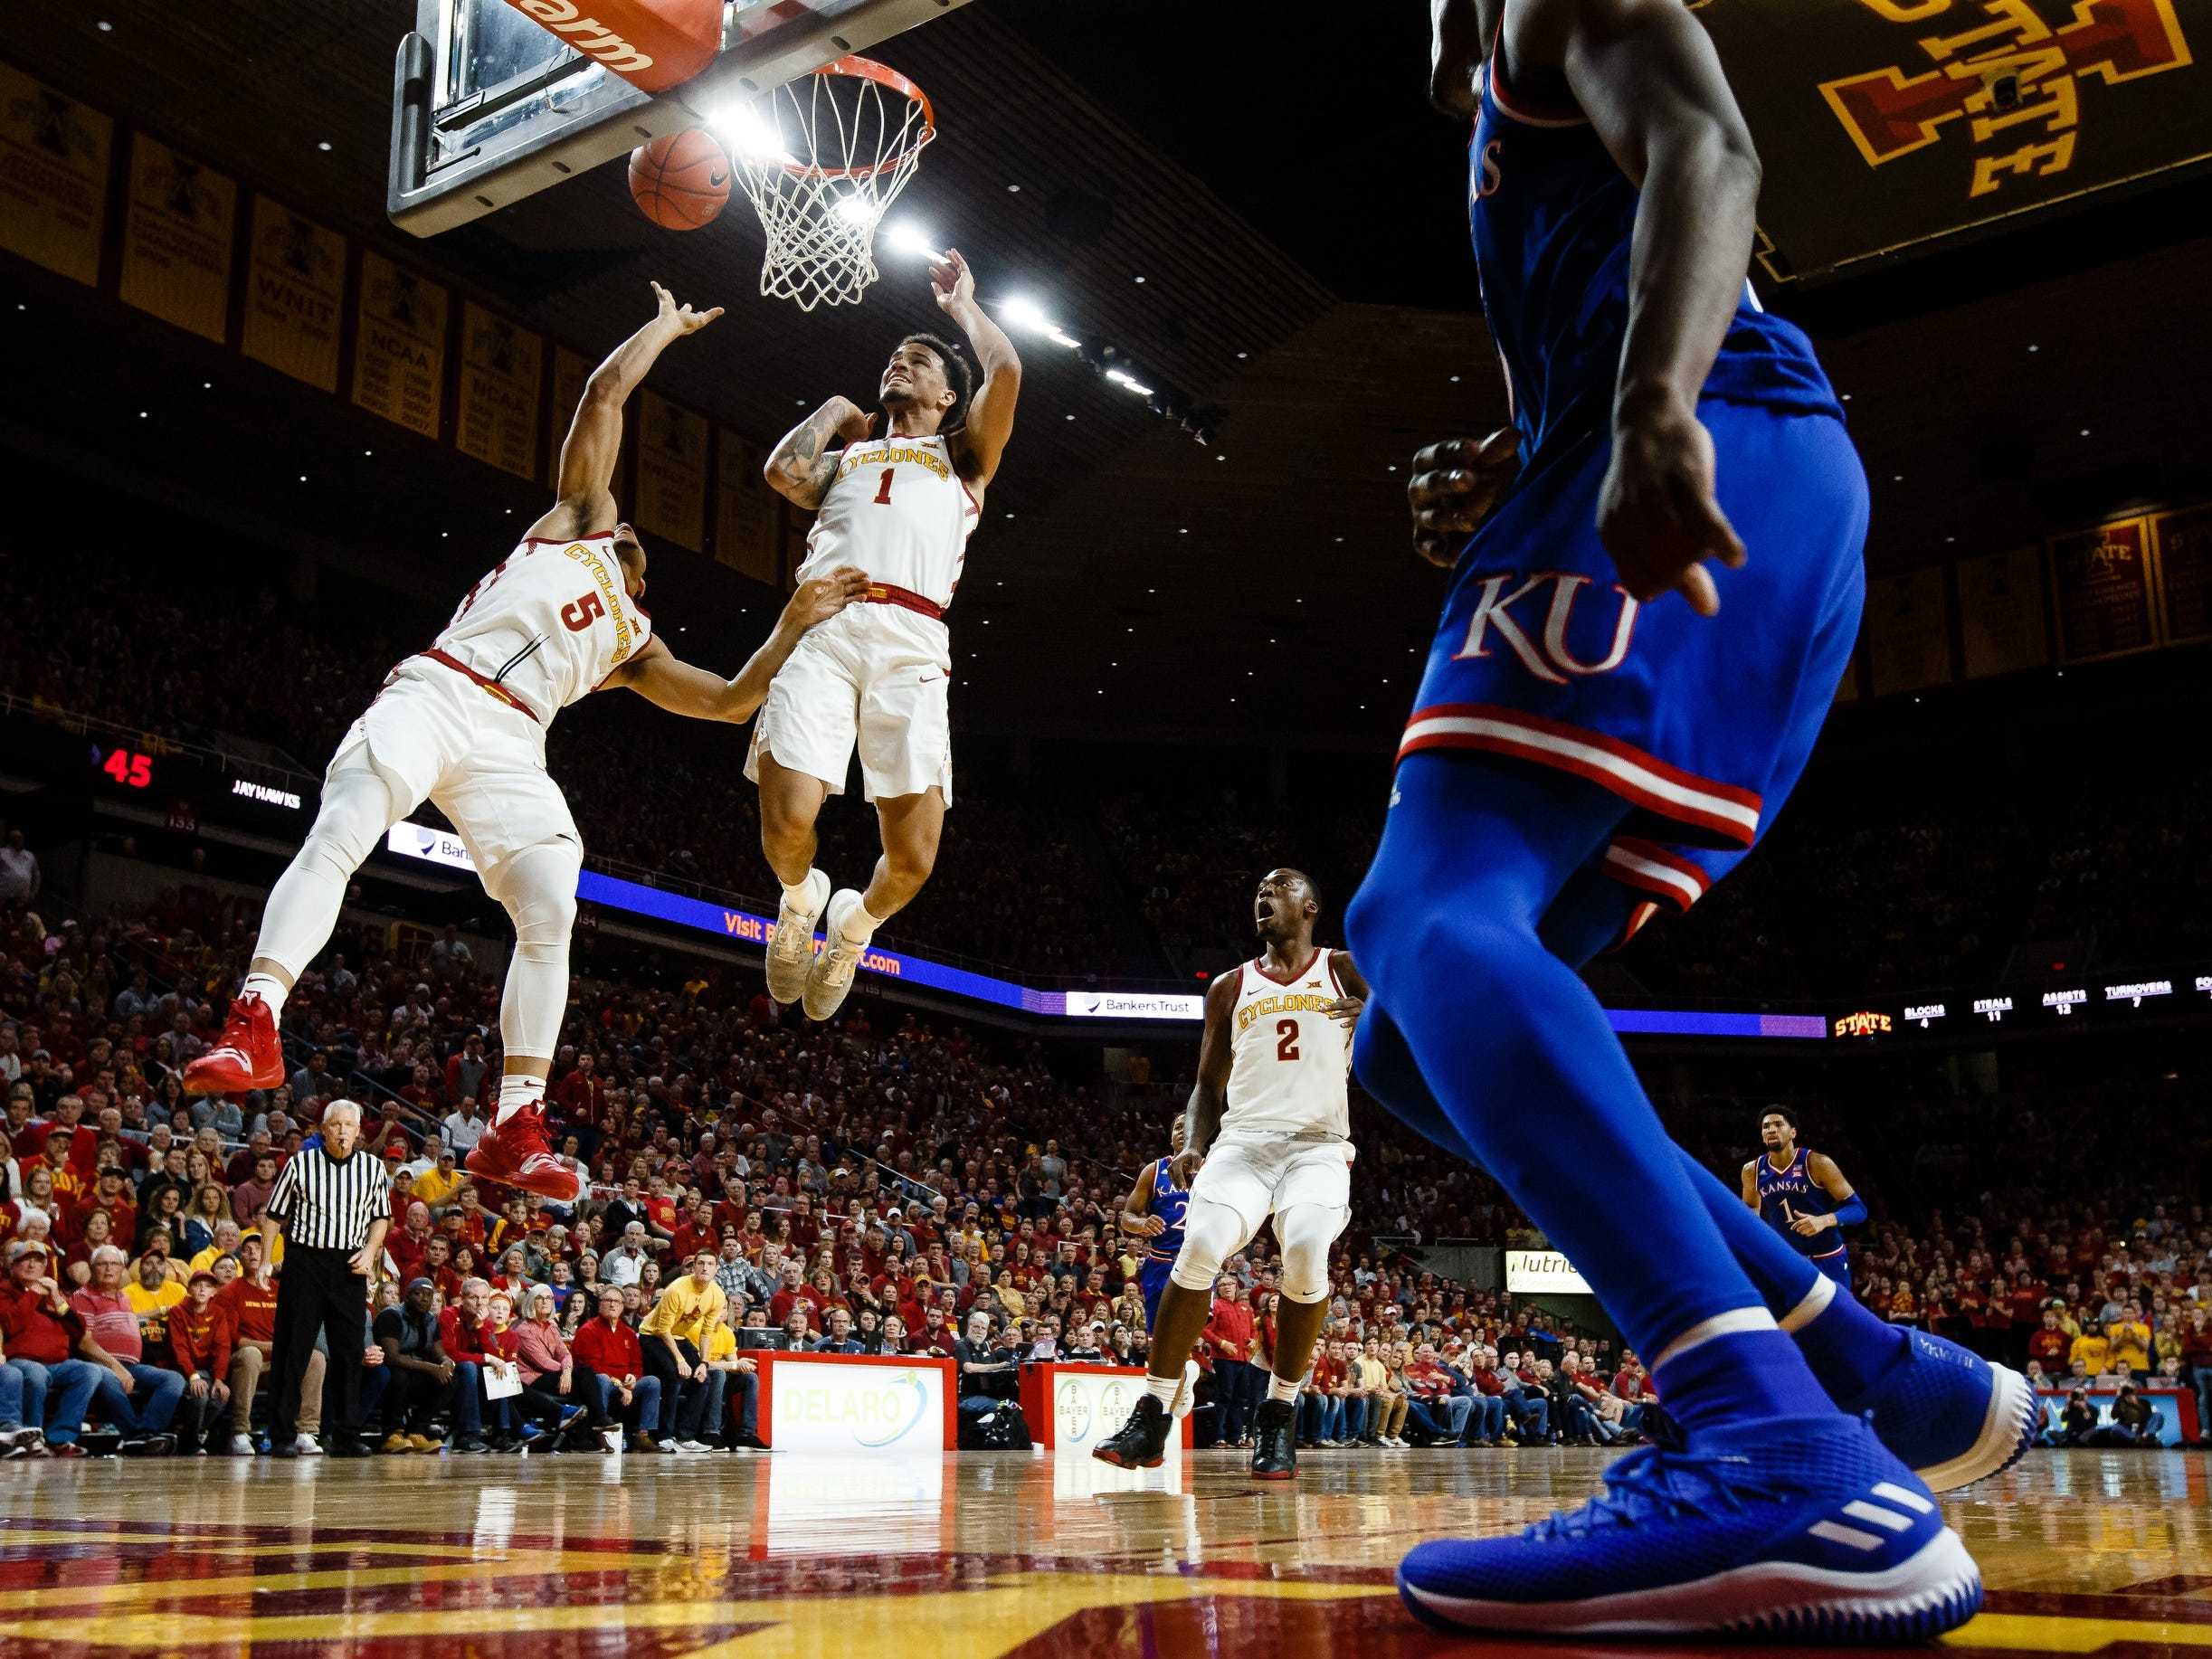 Iowa State's Lindell Wigginton (5) and Iowa State's Nick Weiler-Babb (1) make sure Wiggington's layup goes in during the second half of their basketball game on Saturday, Jan. 5, 2019, in Ames. Iowa State would go on to beat Kansas 77-60.